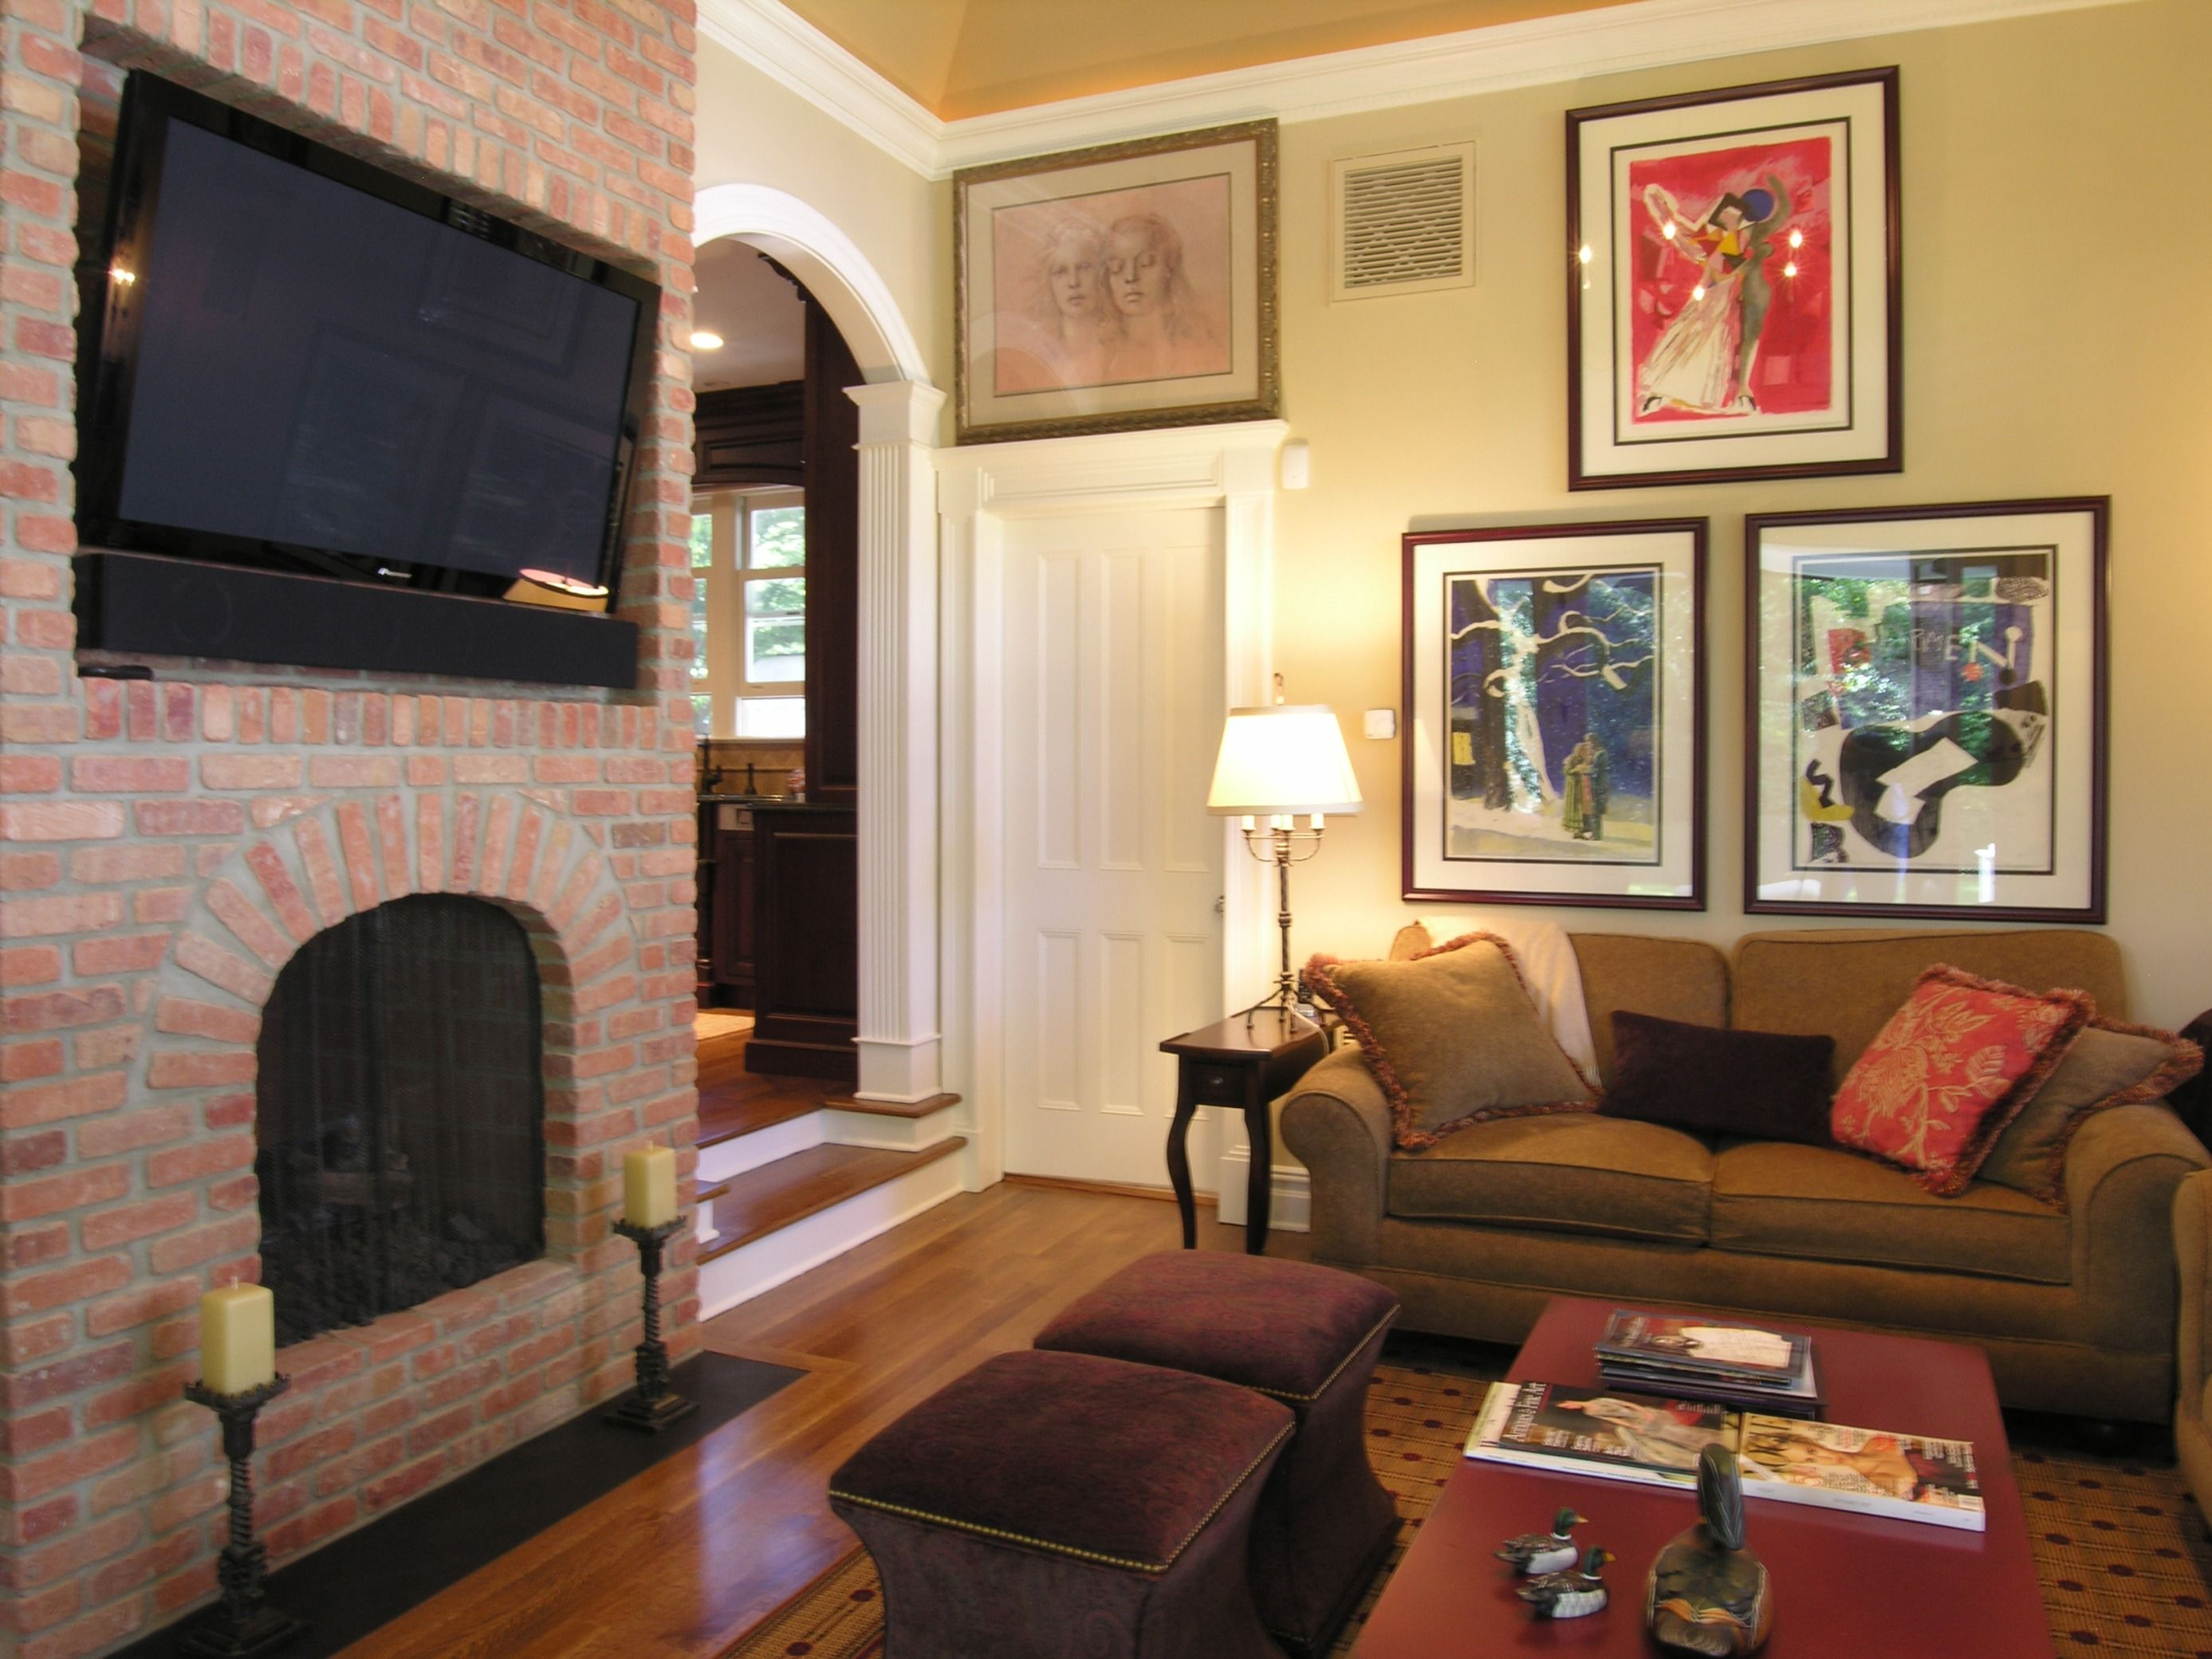 20 Living Room With Fireplace That Will Warm You All Winter Living Room Design Modern Living Room Colors Paint Colors For Living Room #odd #shaped #living #room #furniture #placement